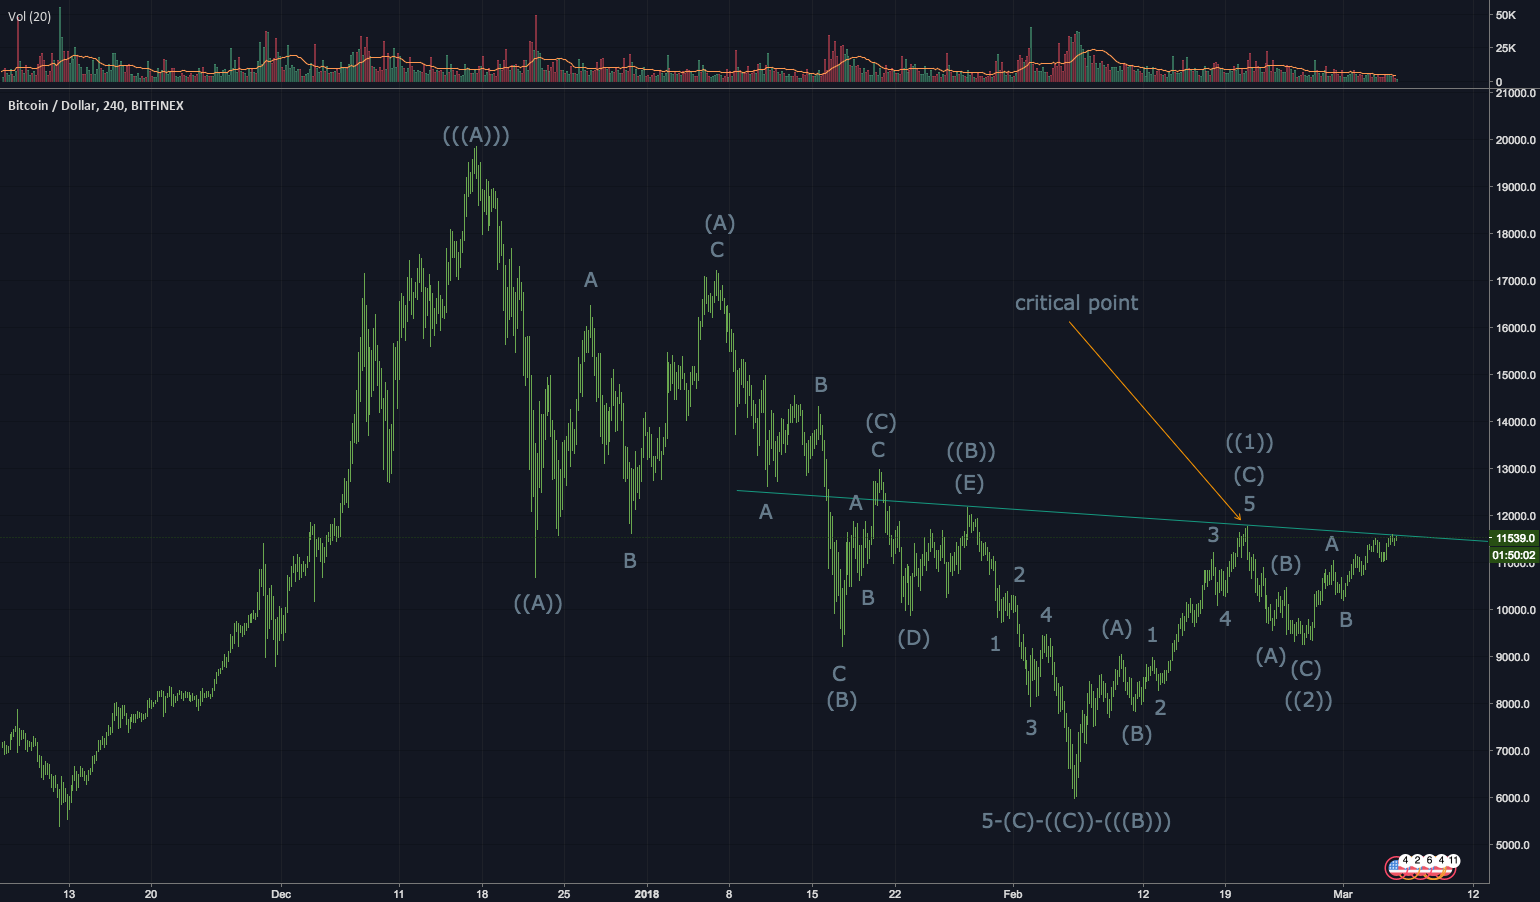 BTCUSD 240 min. Possible long with potentially good profit.